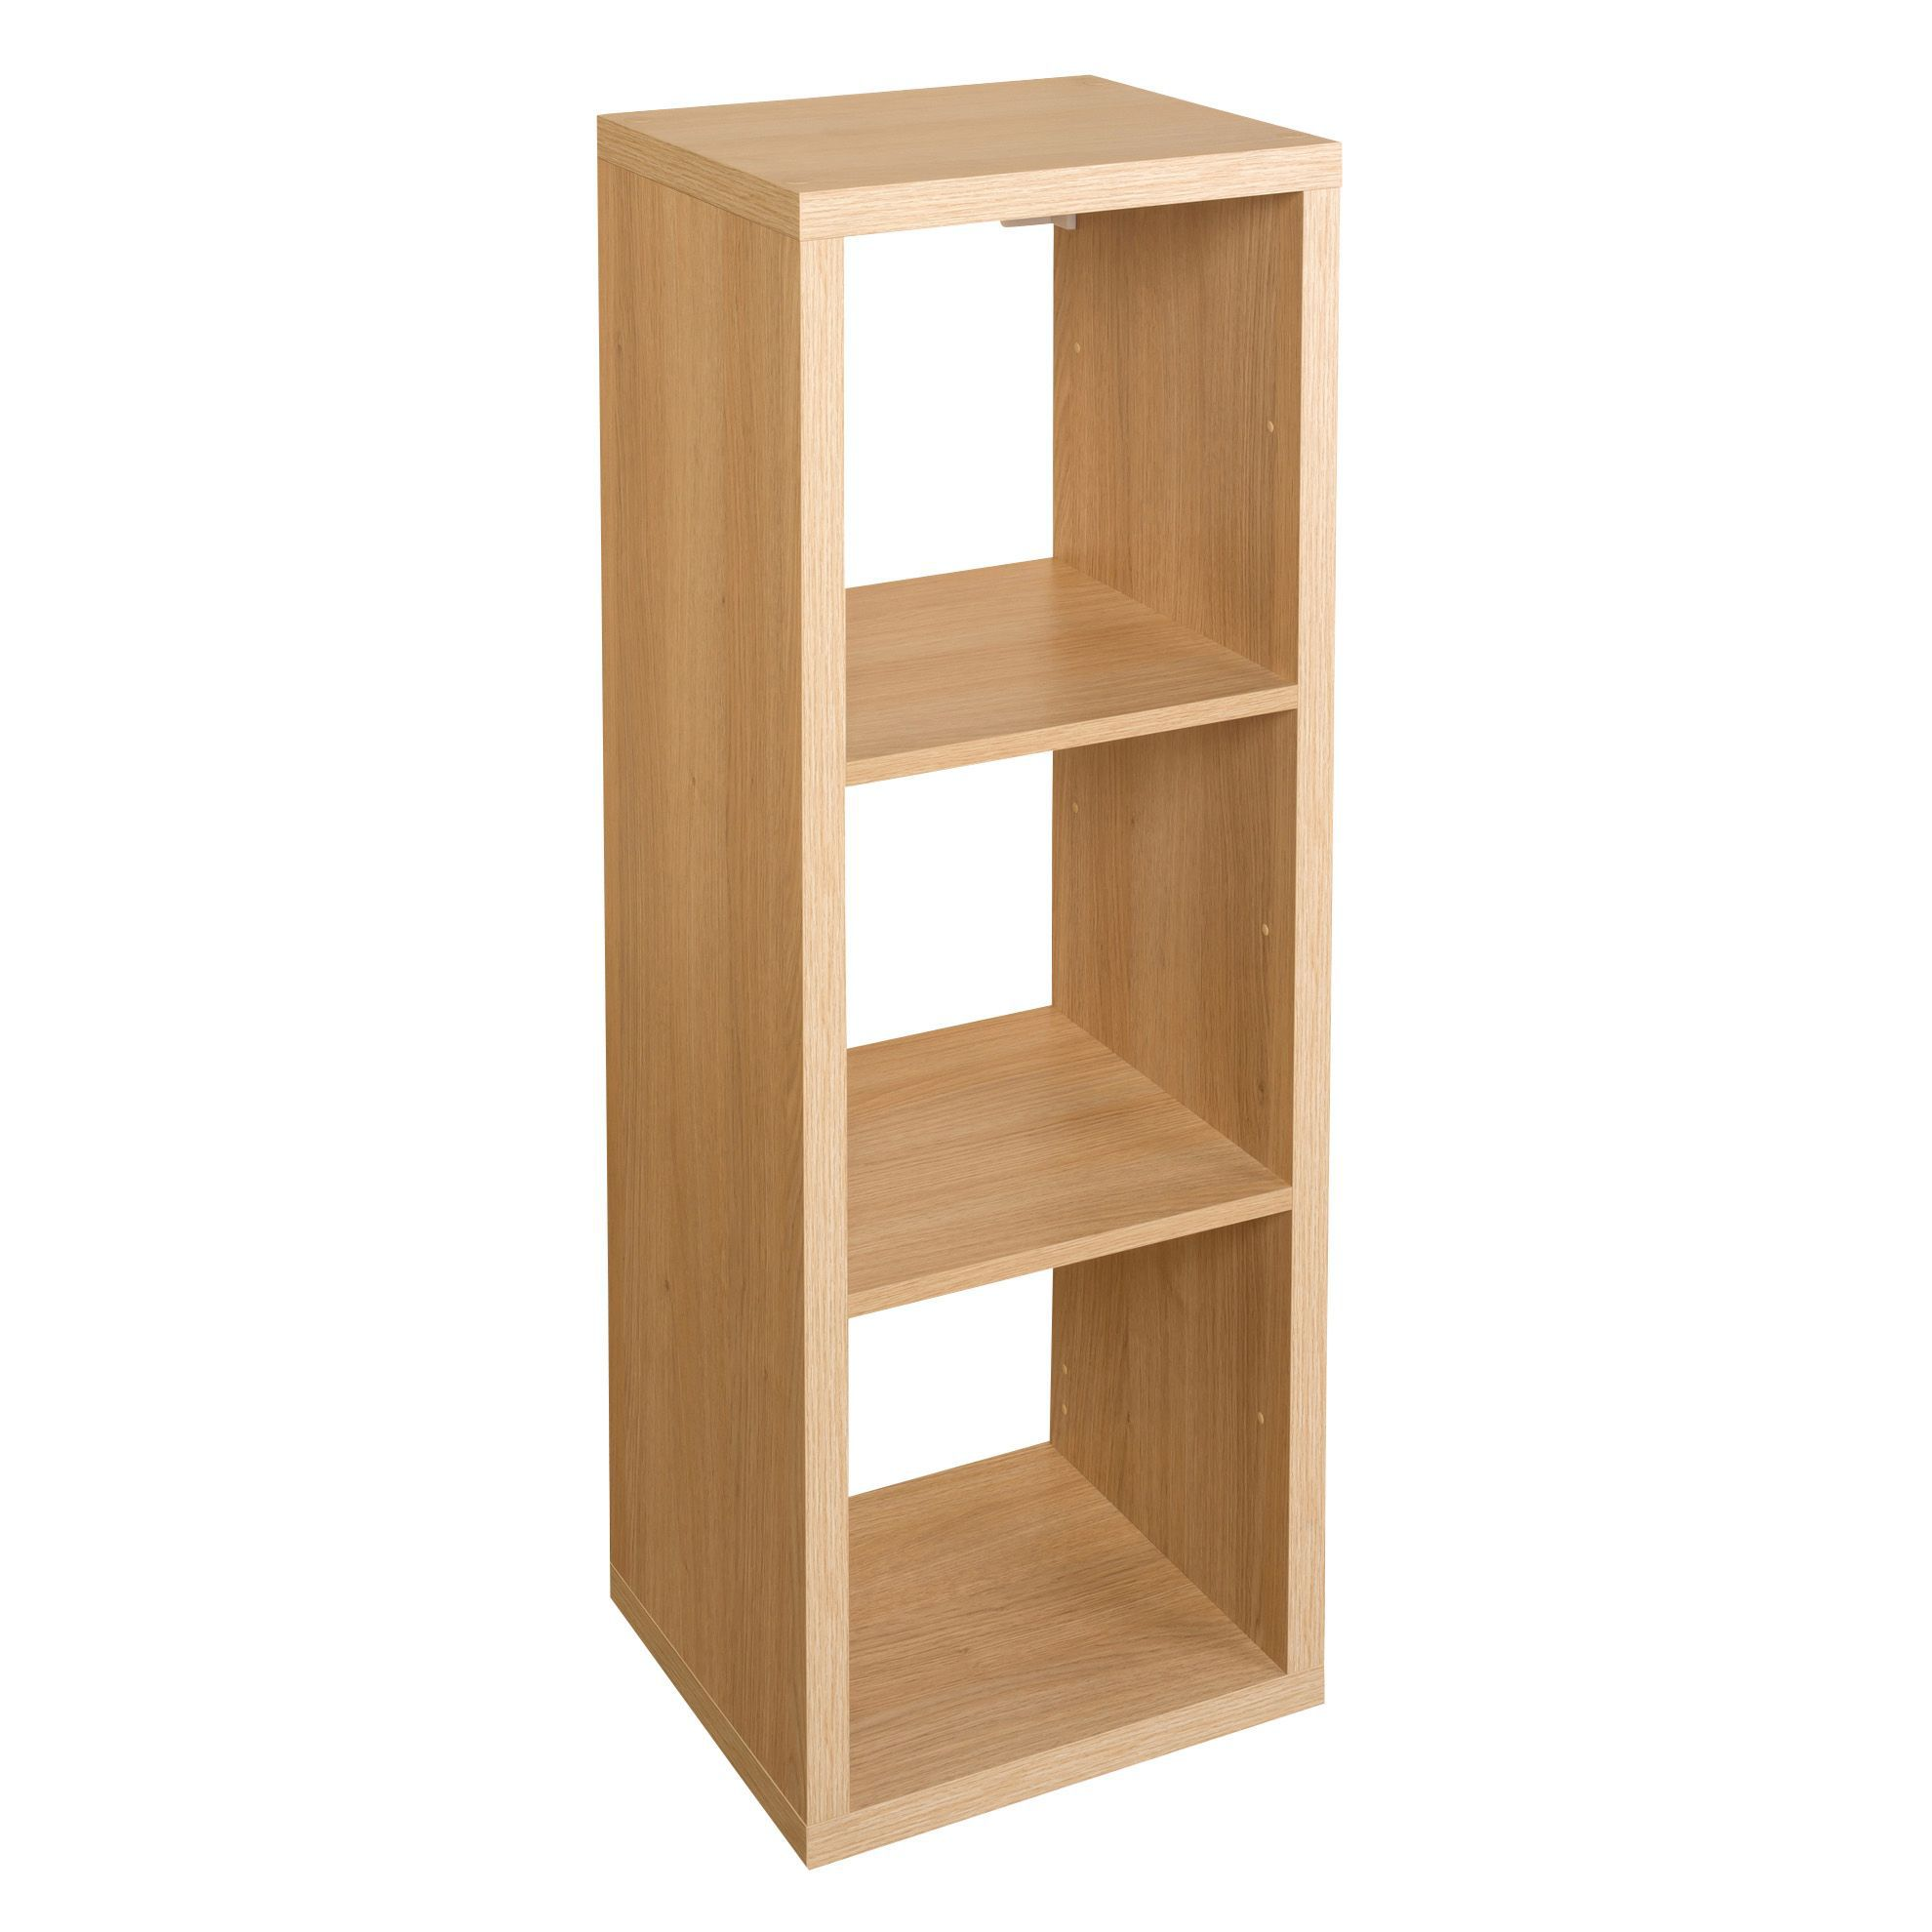 Form Mixxit Oak Effect 3 Cube Shelving Unit H 1080mm W